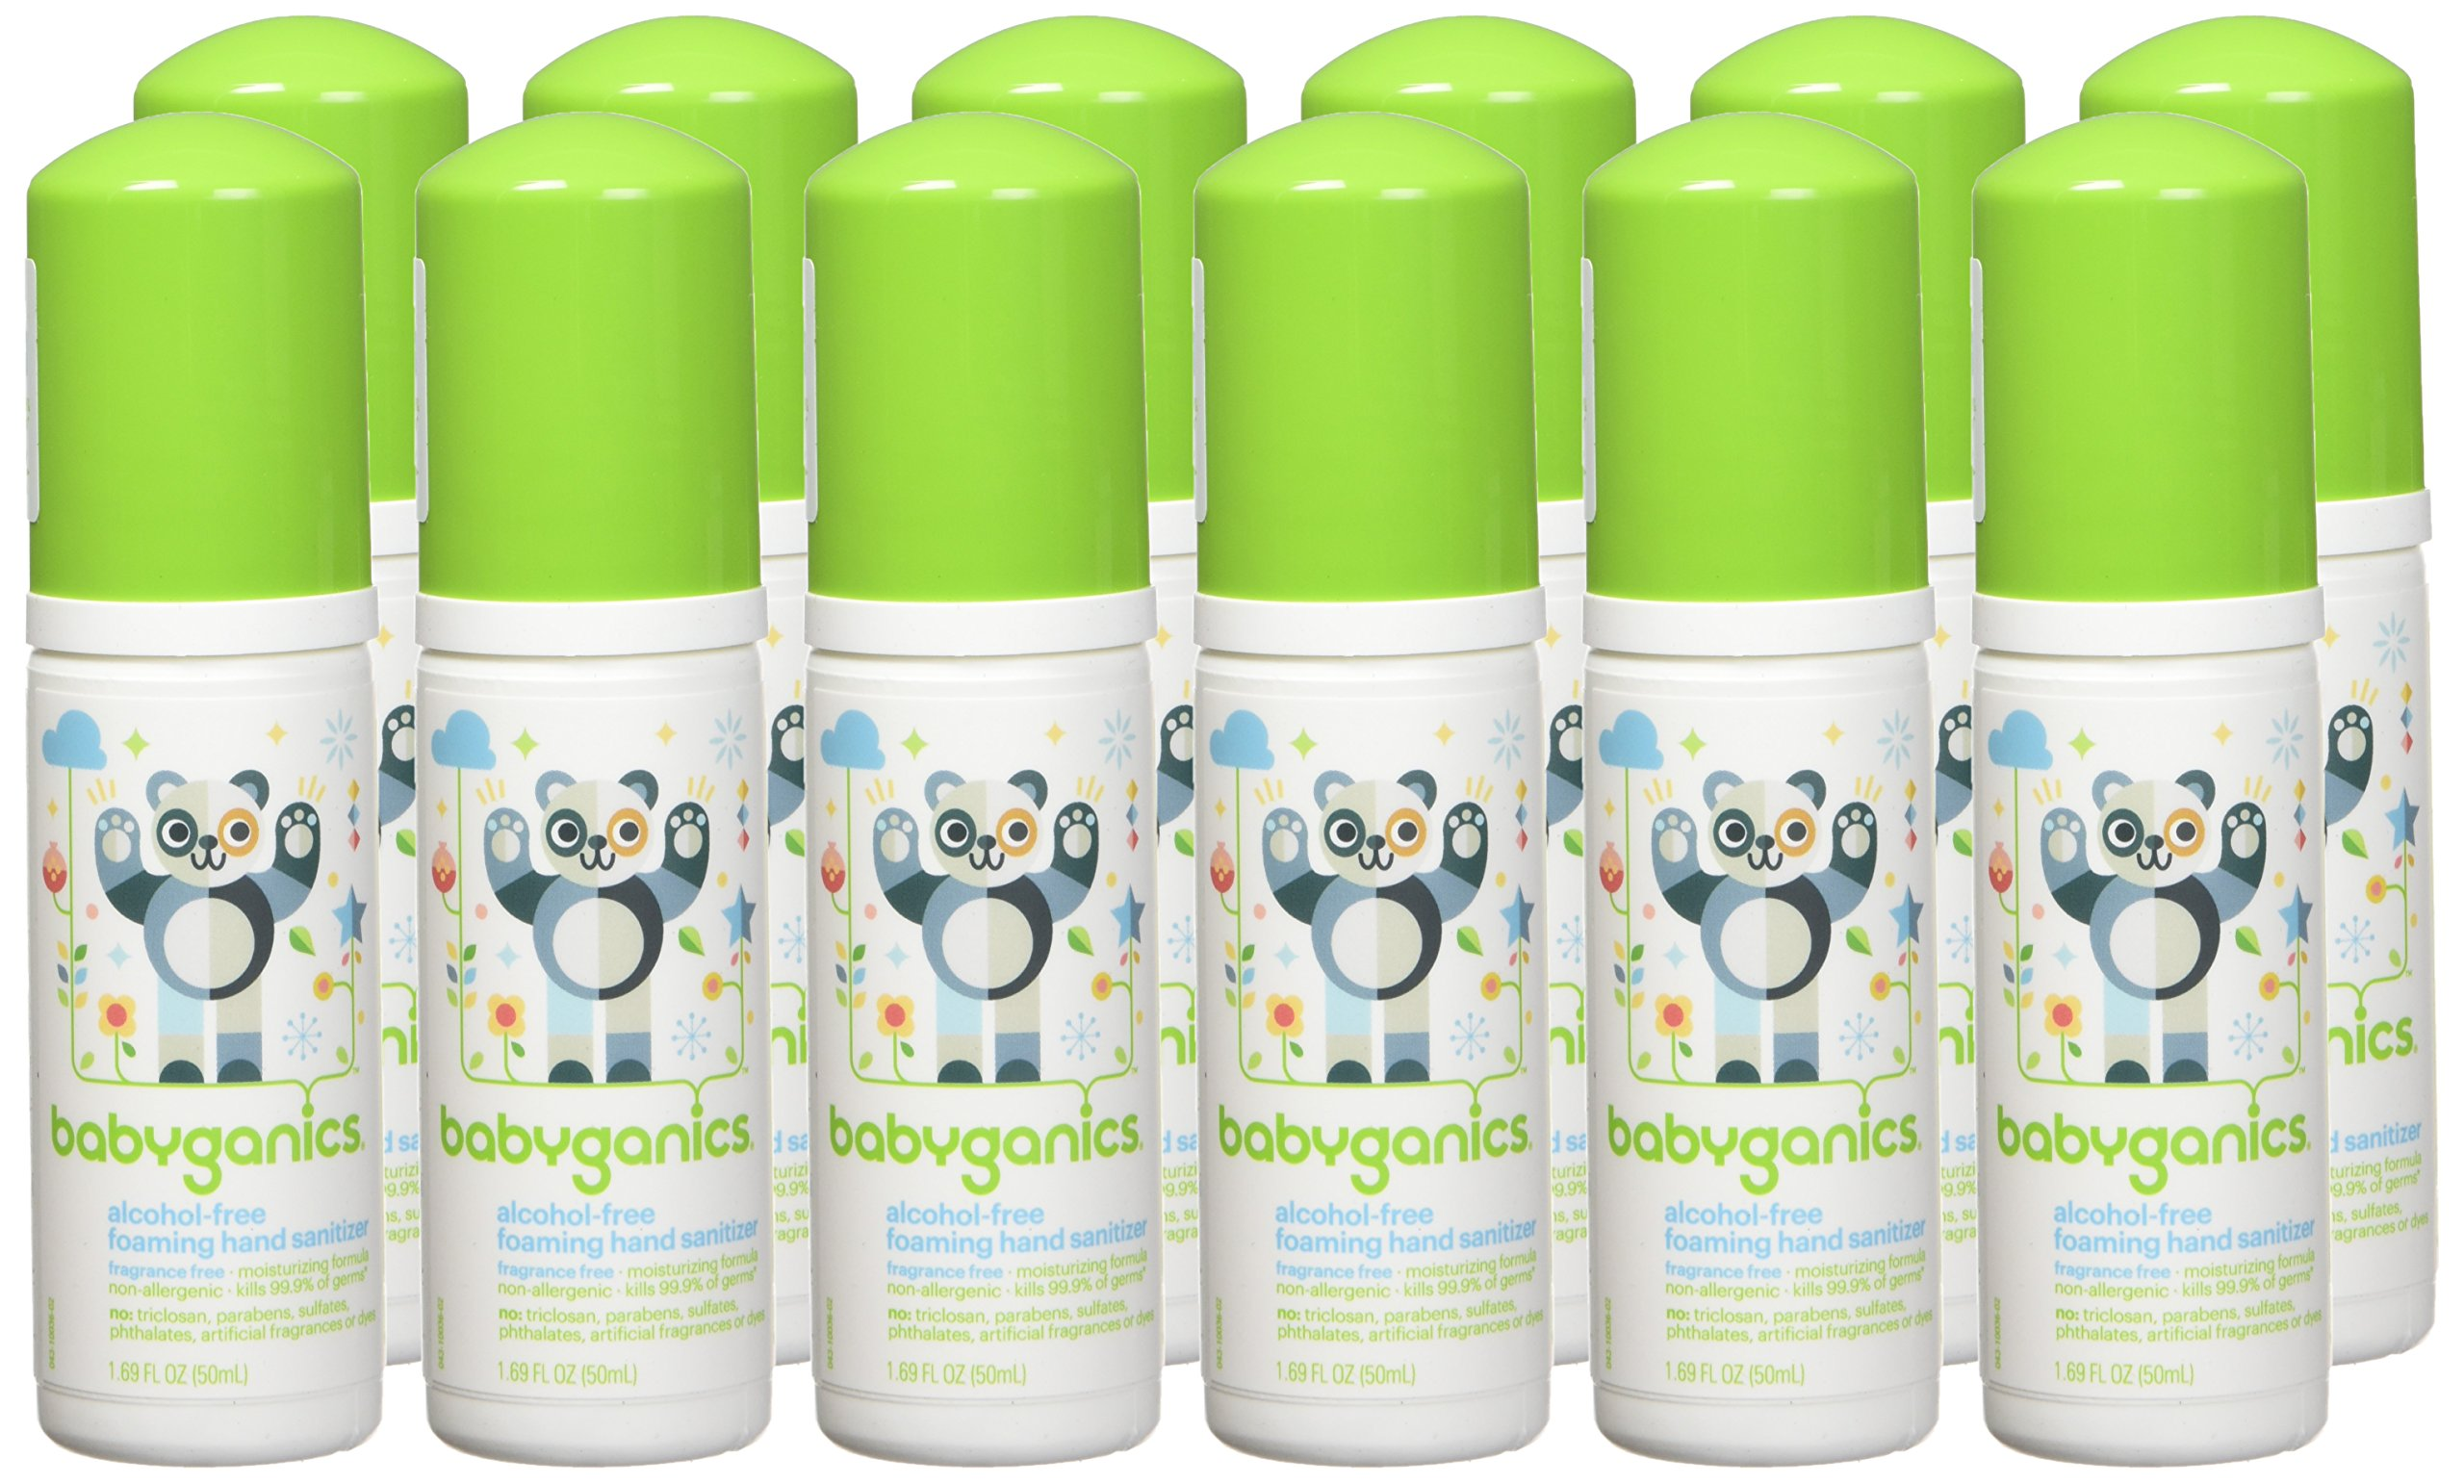 Babyganics Alcohol-Free Foaming Hand Sanitizer, Fragrance Free, On-The-Go, 50 ml (1.69-Ounce), Pump Bottle (Pack of 6) by Babyganics (Image #3)